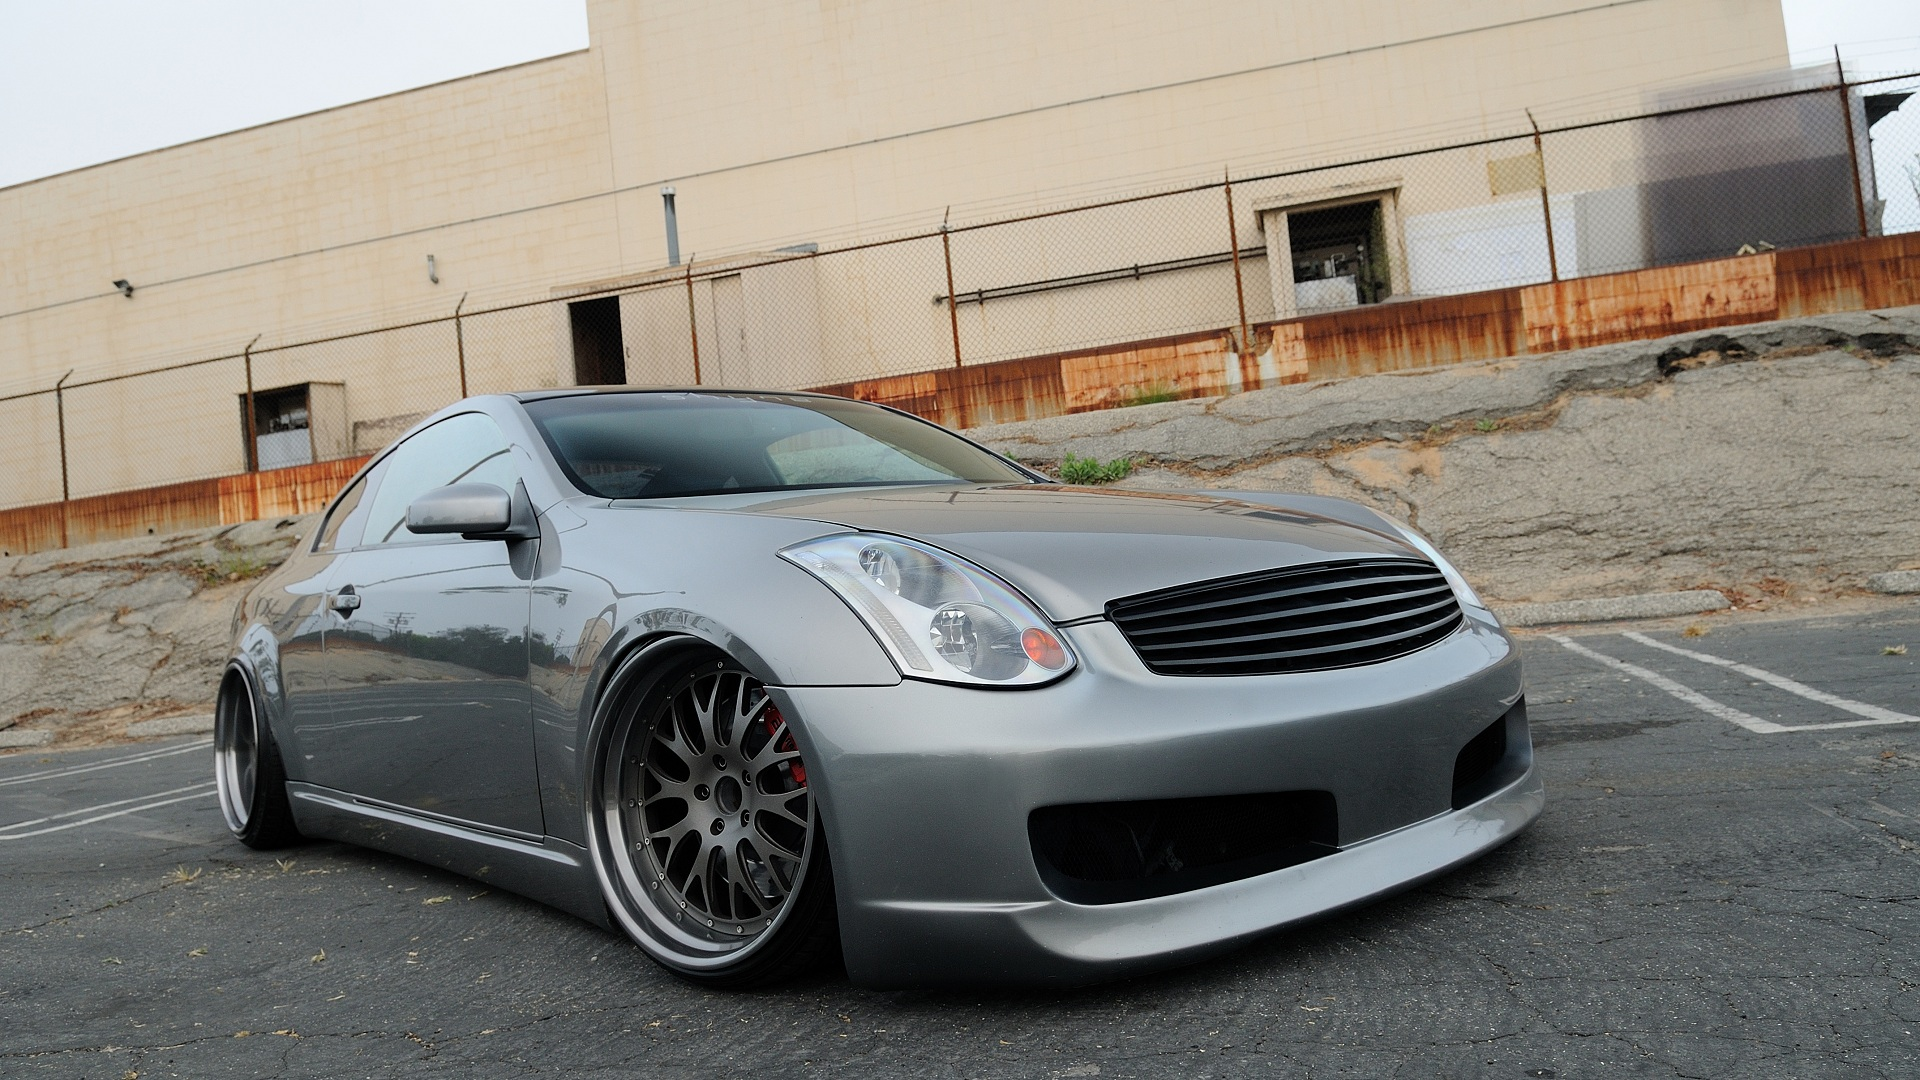 and Slammed G35 Wallpapers Tuned and Slammed G35 Myspace Backgrounds 1920x1080